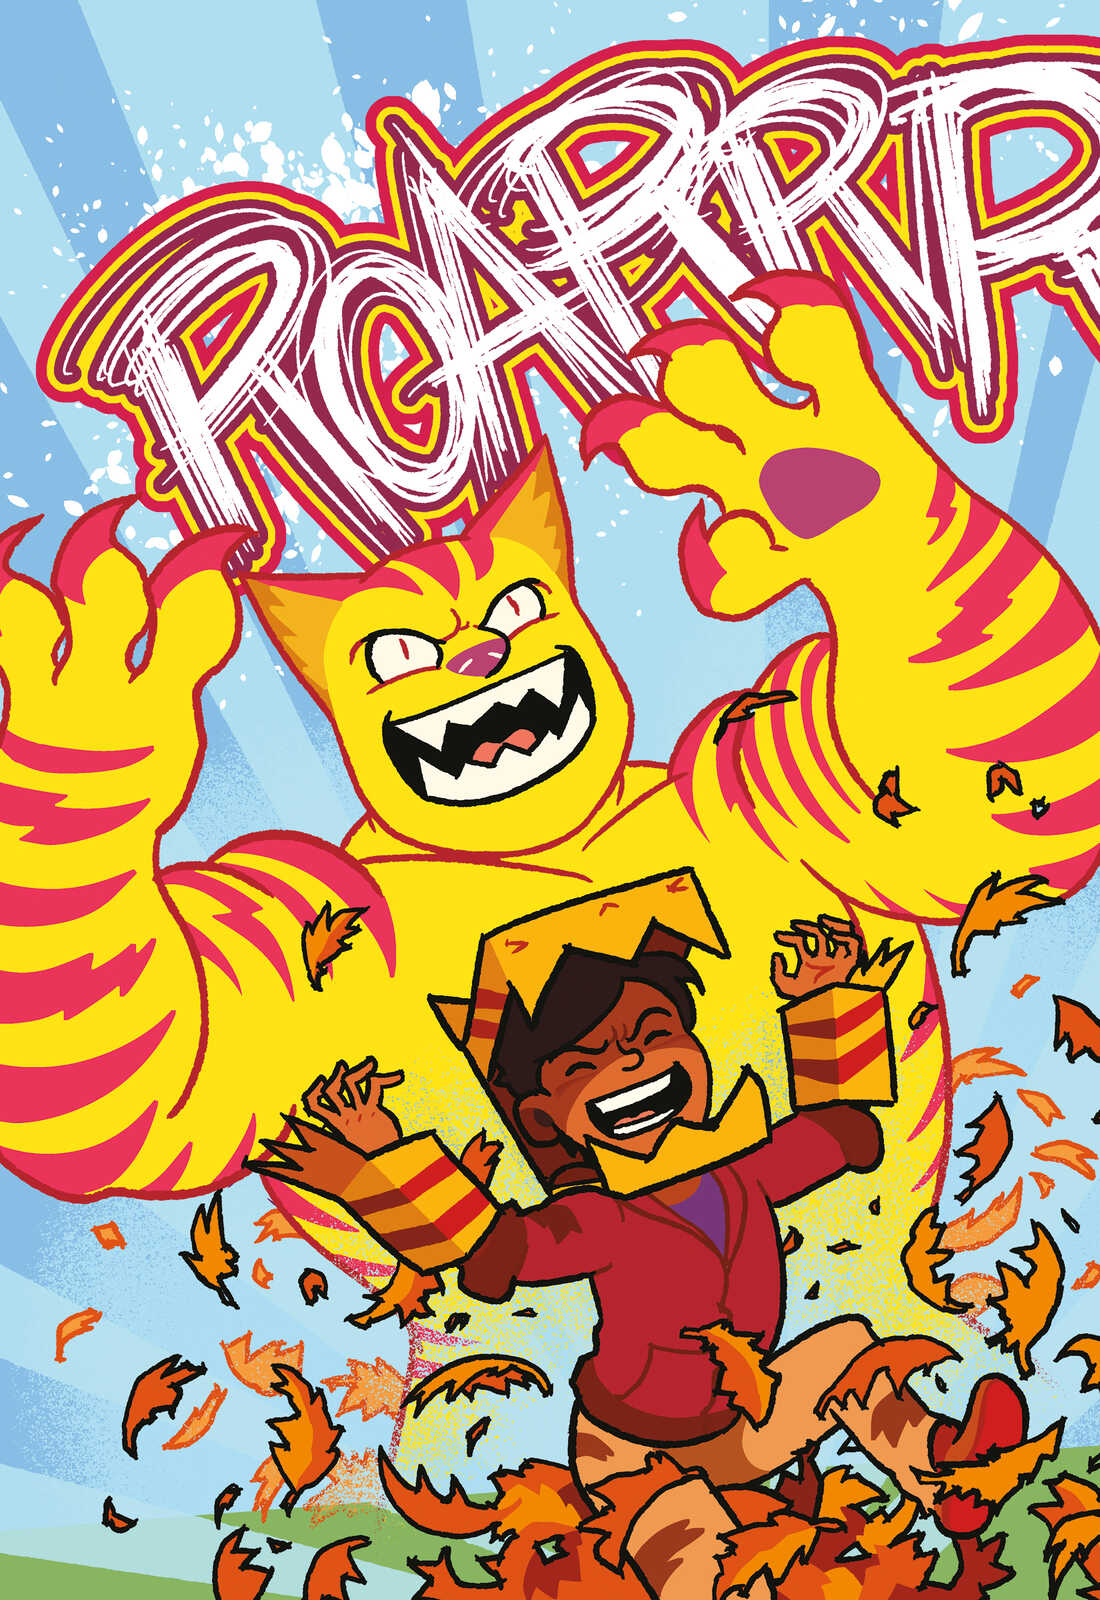 From Cardboard Kingdom: Roar of the Beast by Chad Sell